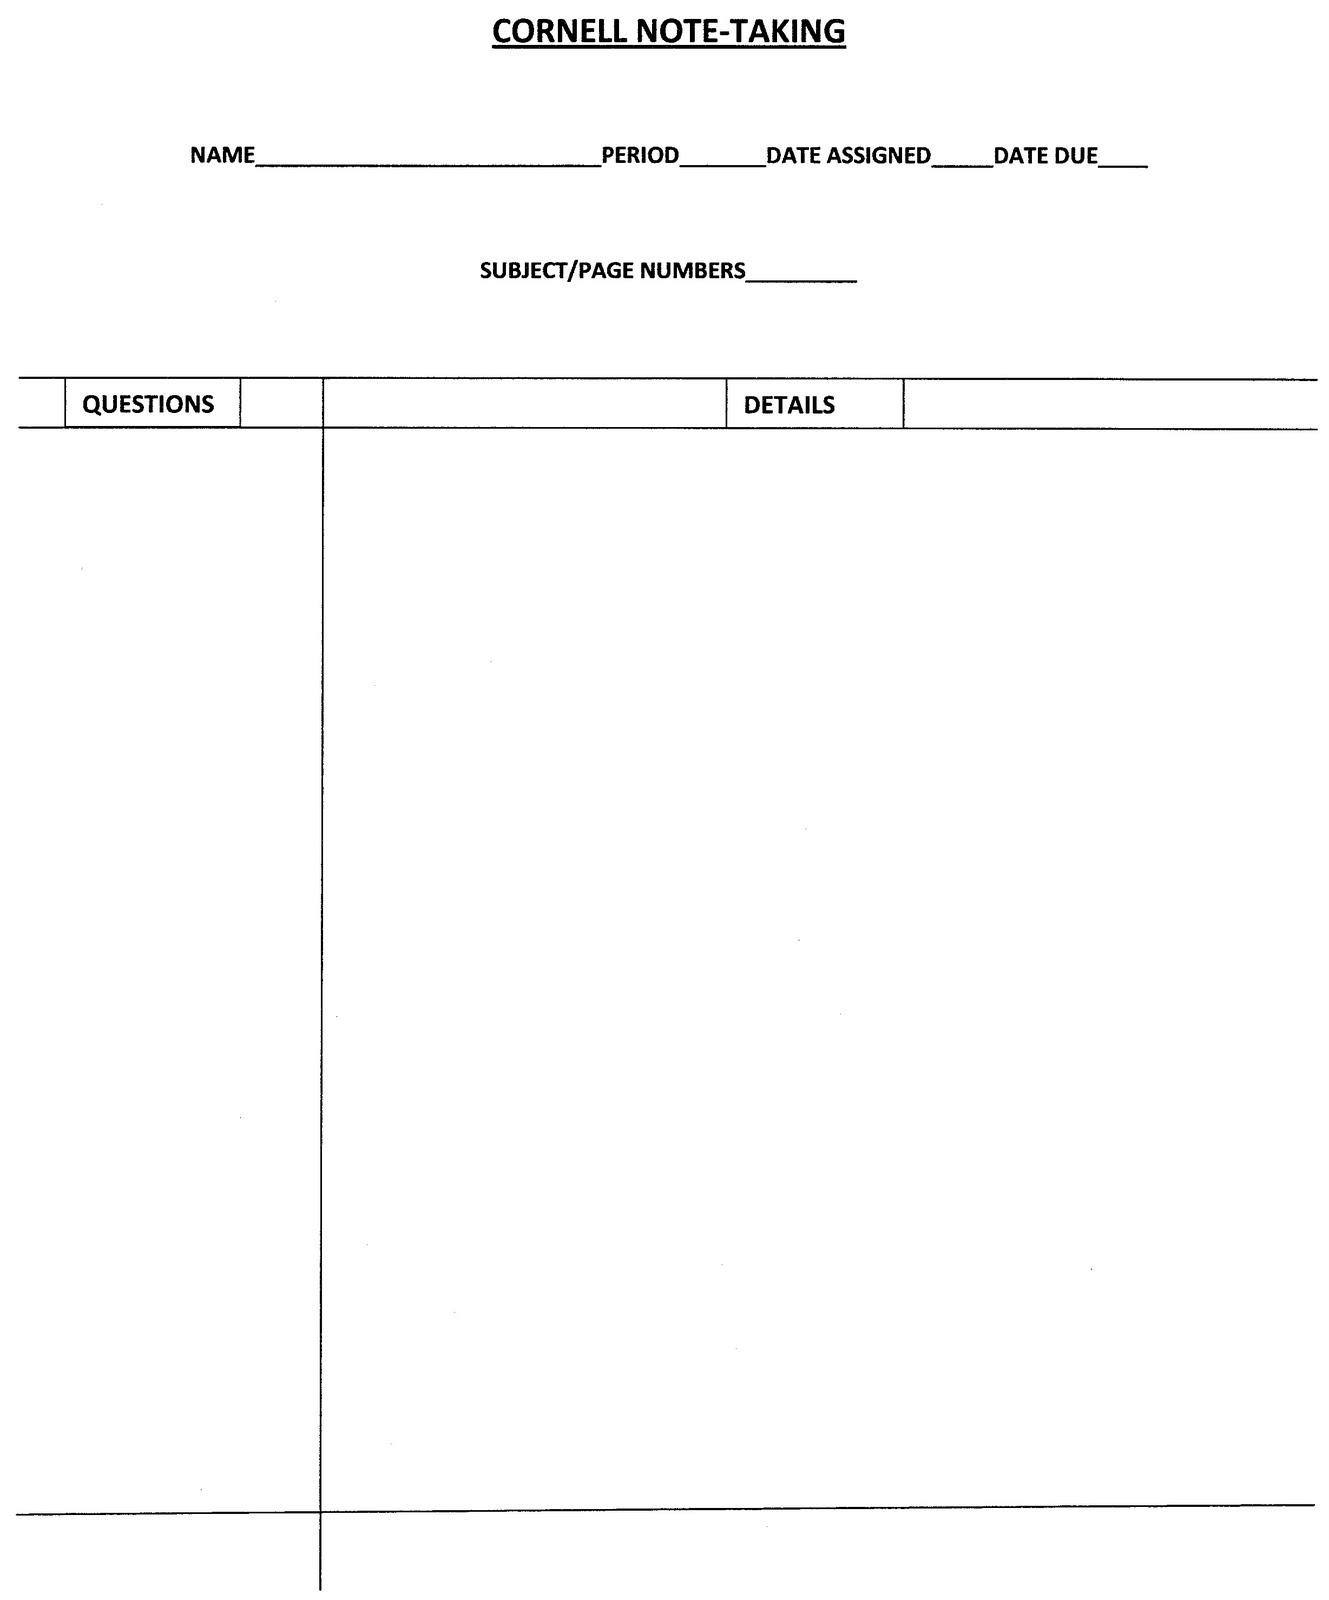 blank cornell notes template word .